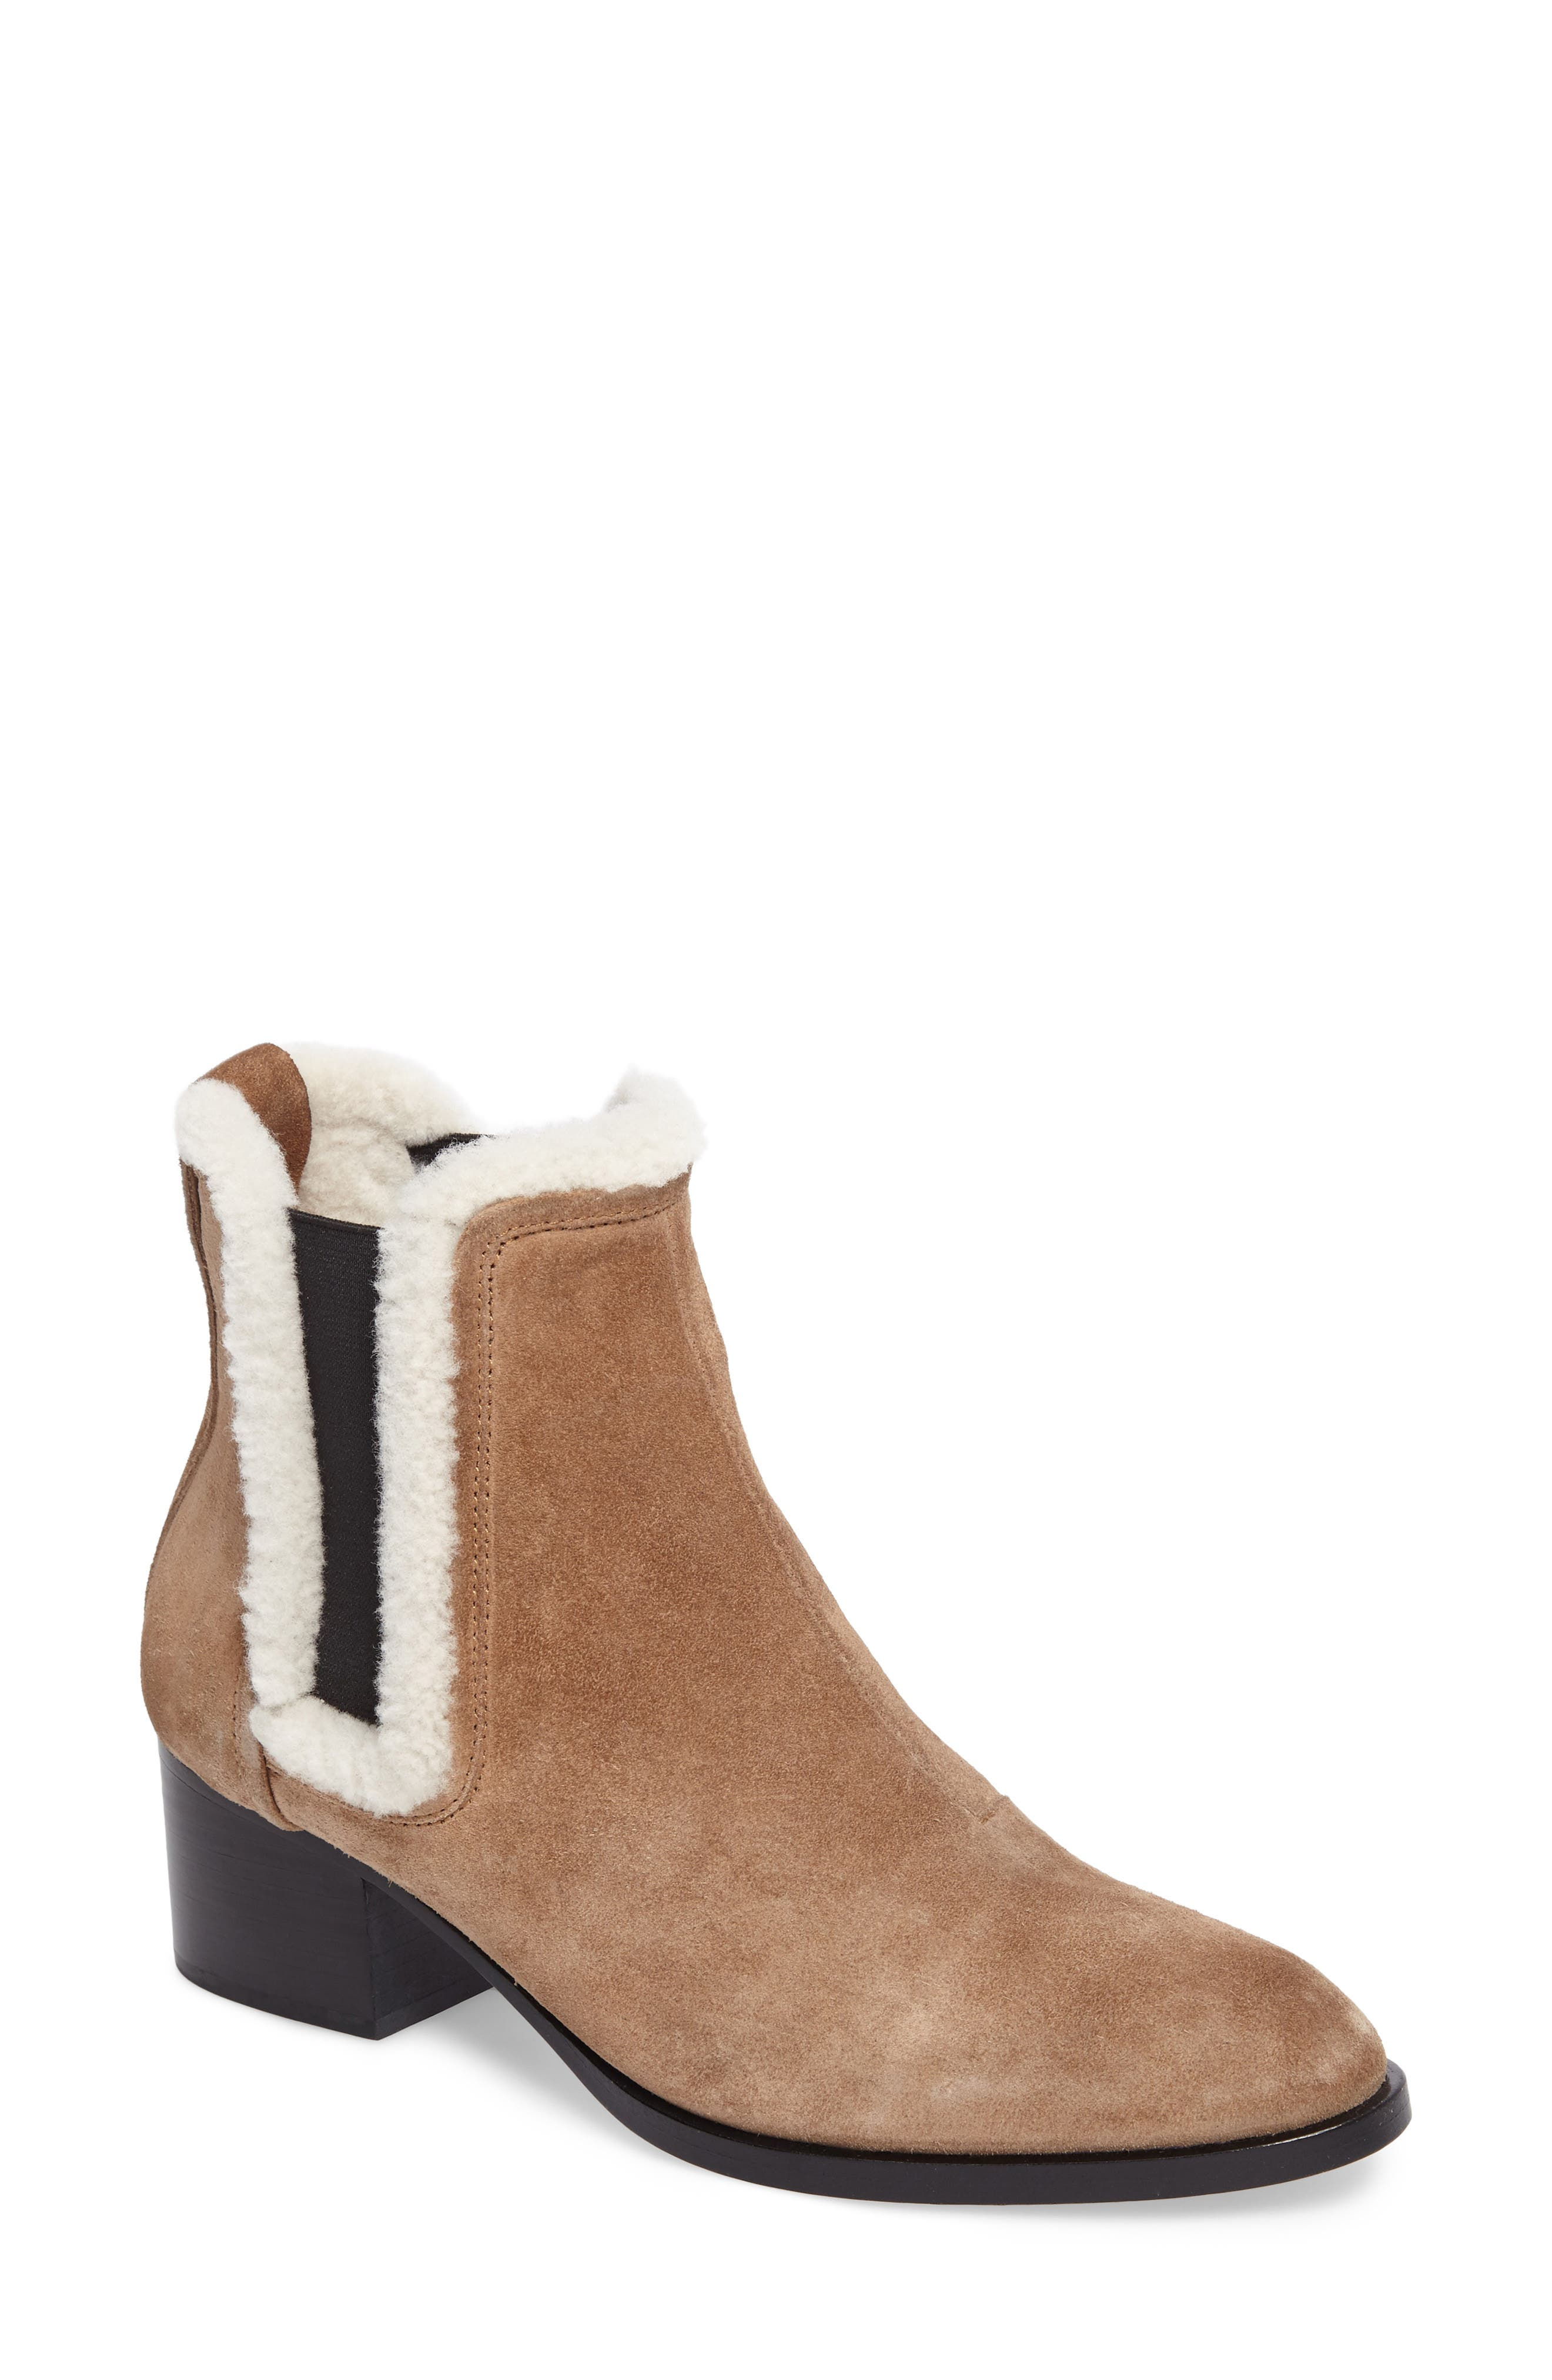 Walker Bootie with Genuine Shearling Trim,                             Main thumbnail 1, color,                             227